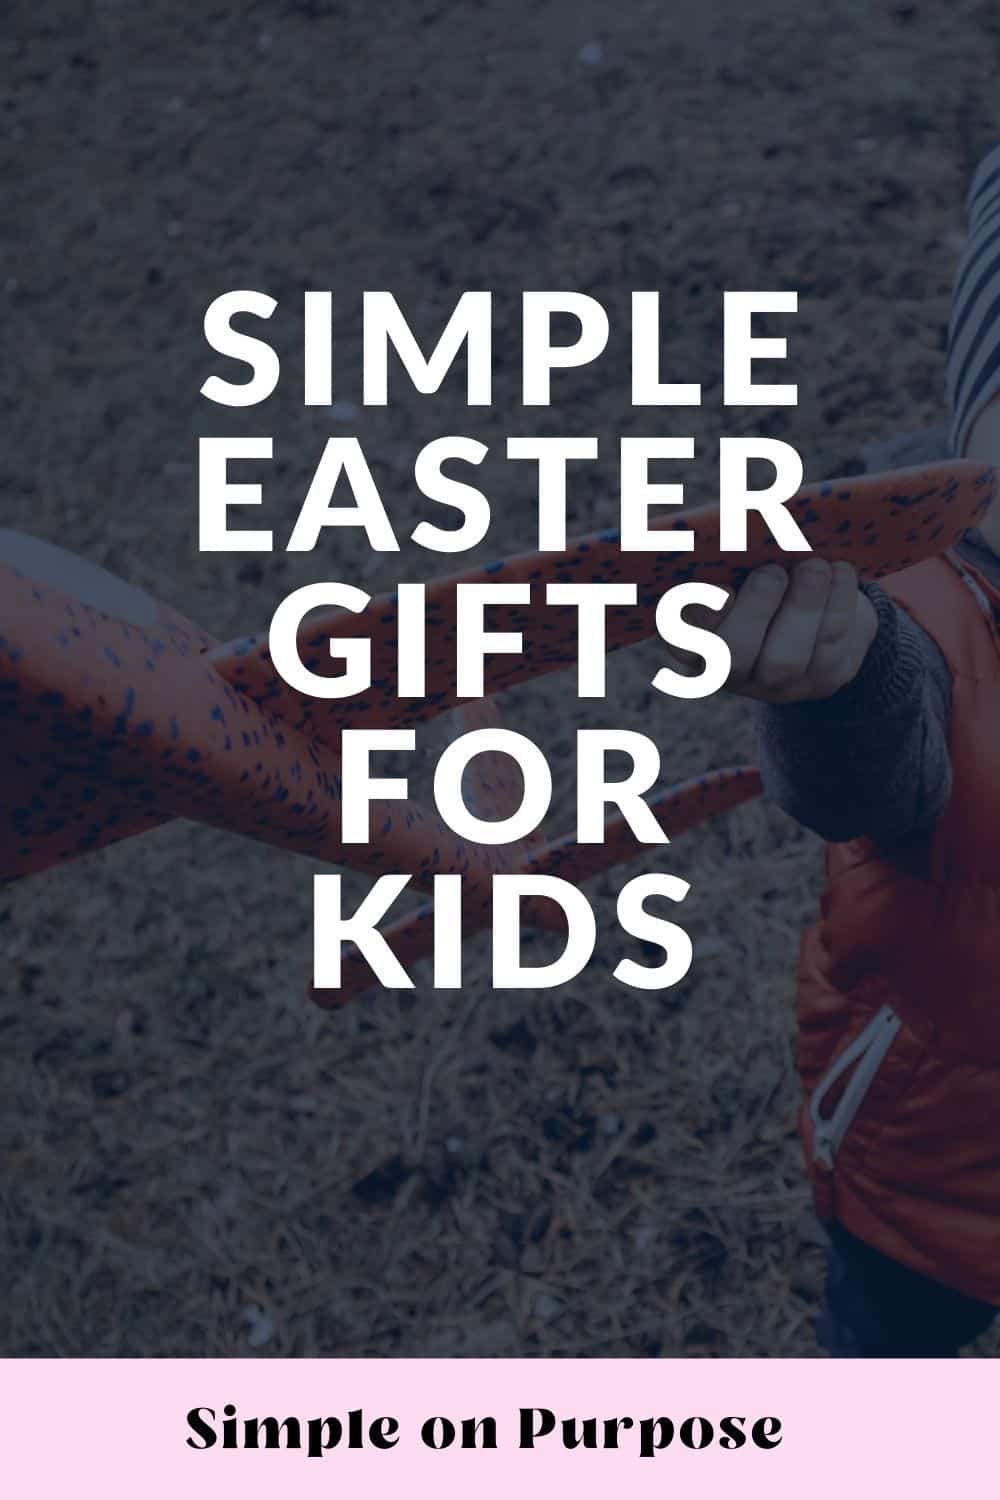 """small boy with glider plane and text overlay """"simple easter gifts for kids"""""""